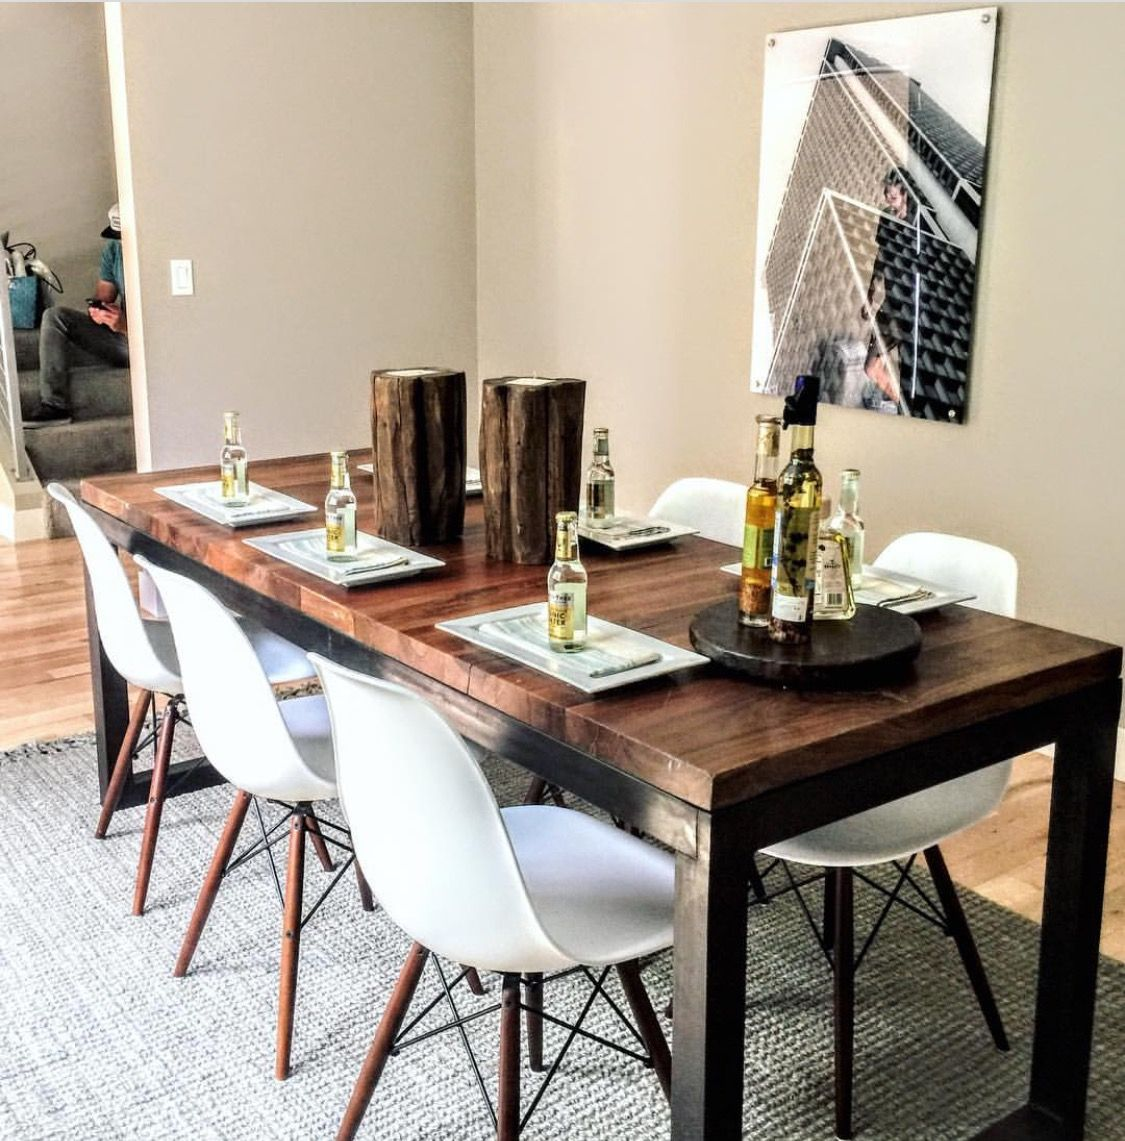 Home Staging Dining Room Table: Modern Dining Room, Dining Table